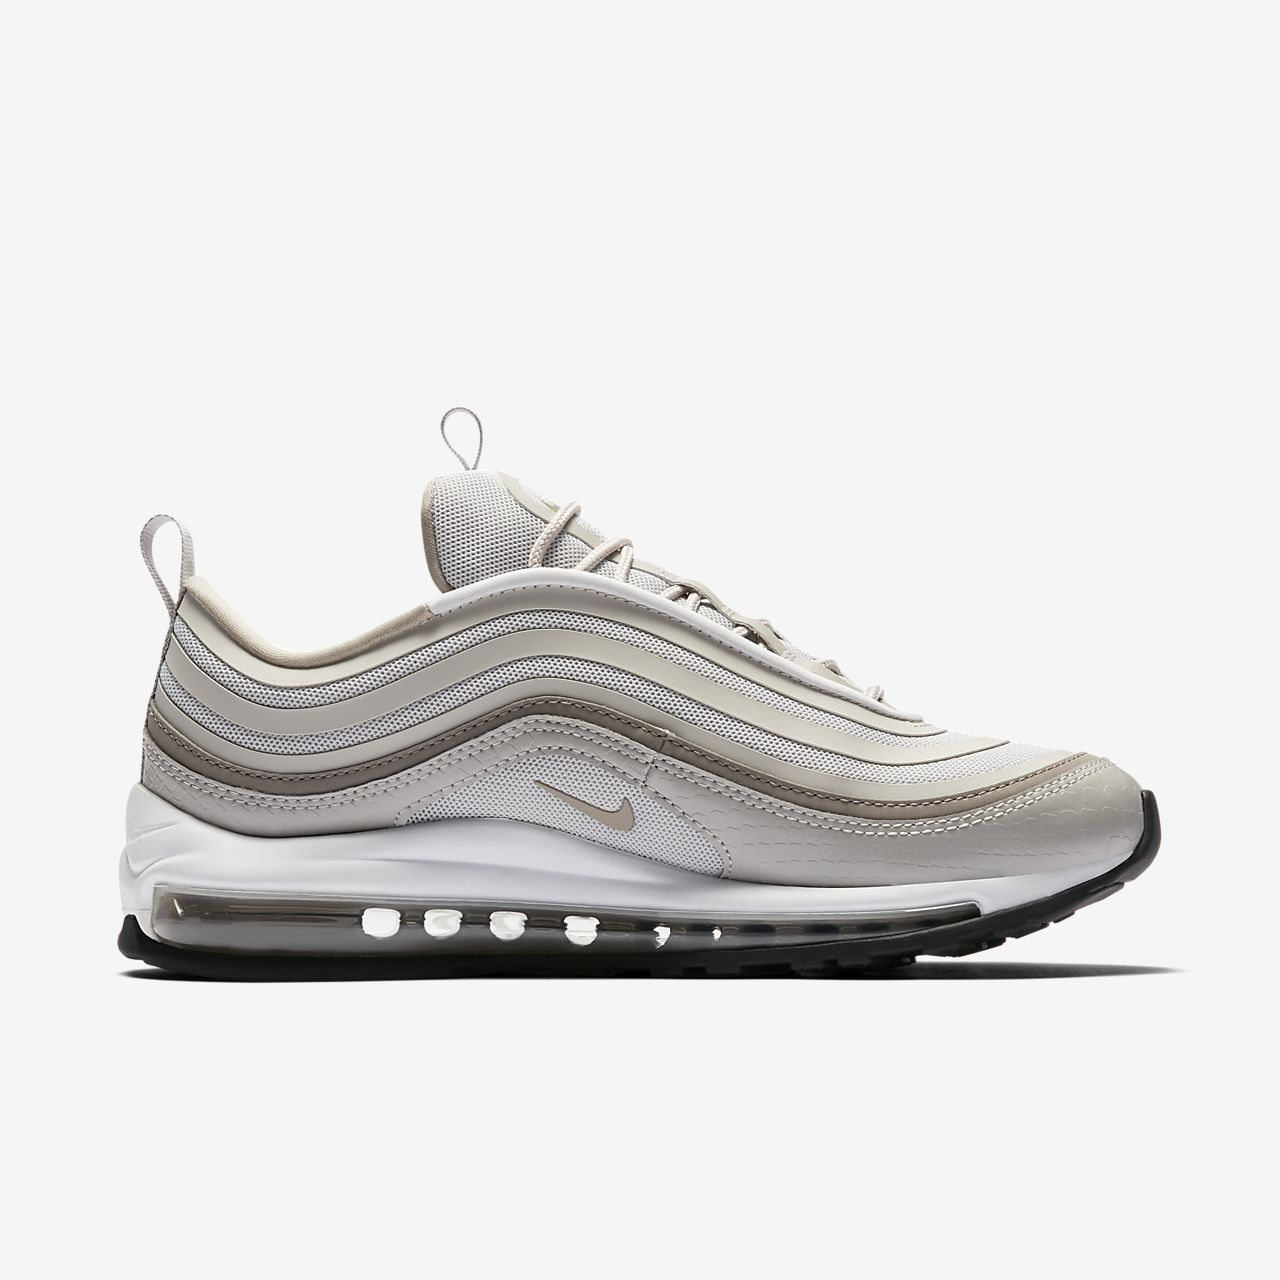 Nike Baskets Air Max Couche De Vêtements De Sport 97 « / Noir T63w0w